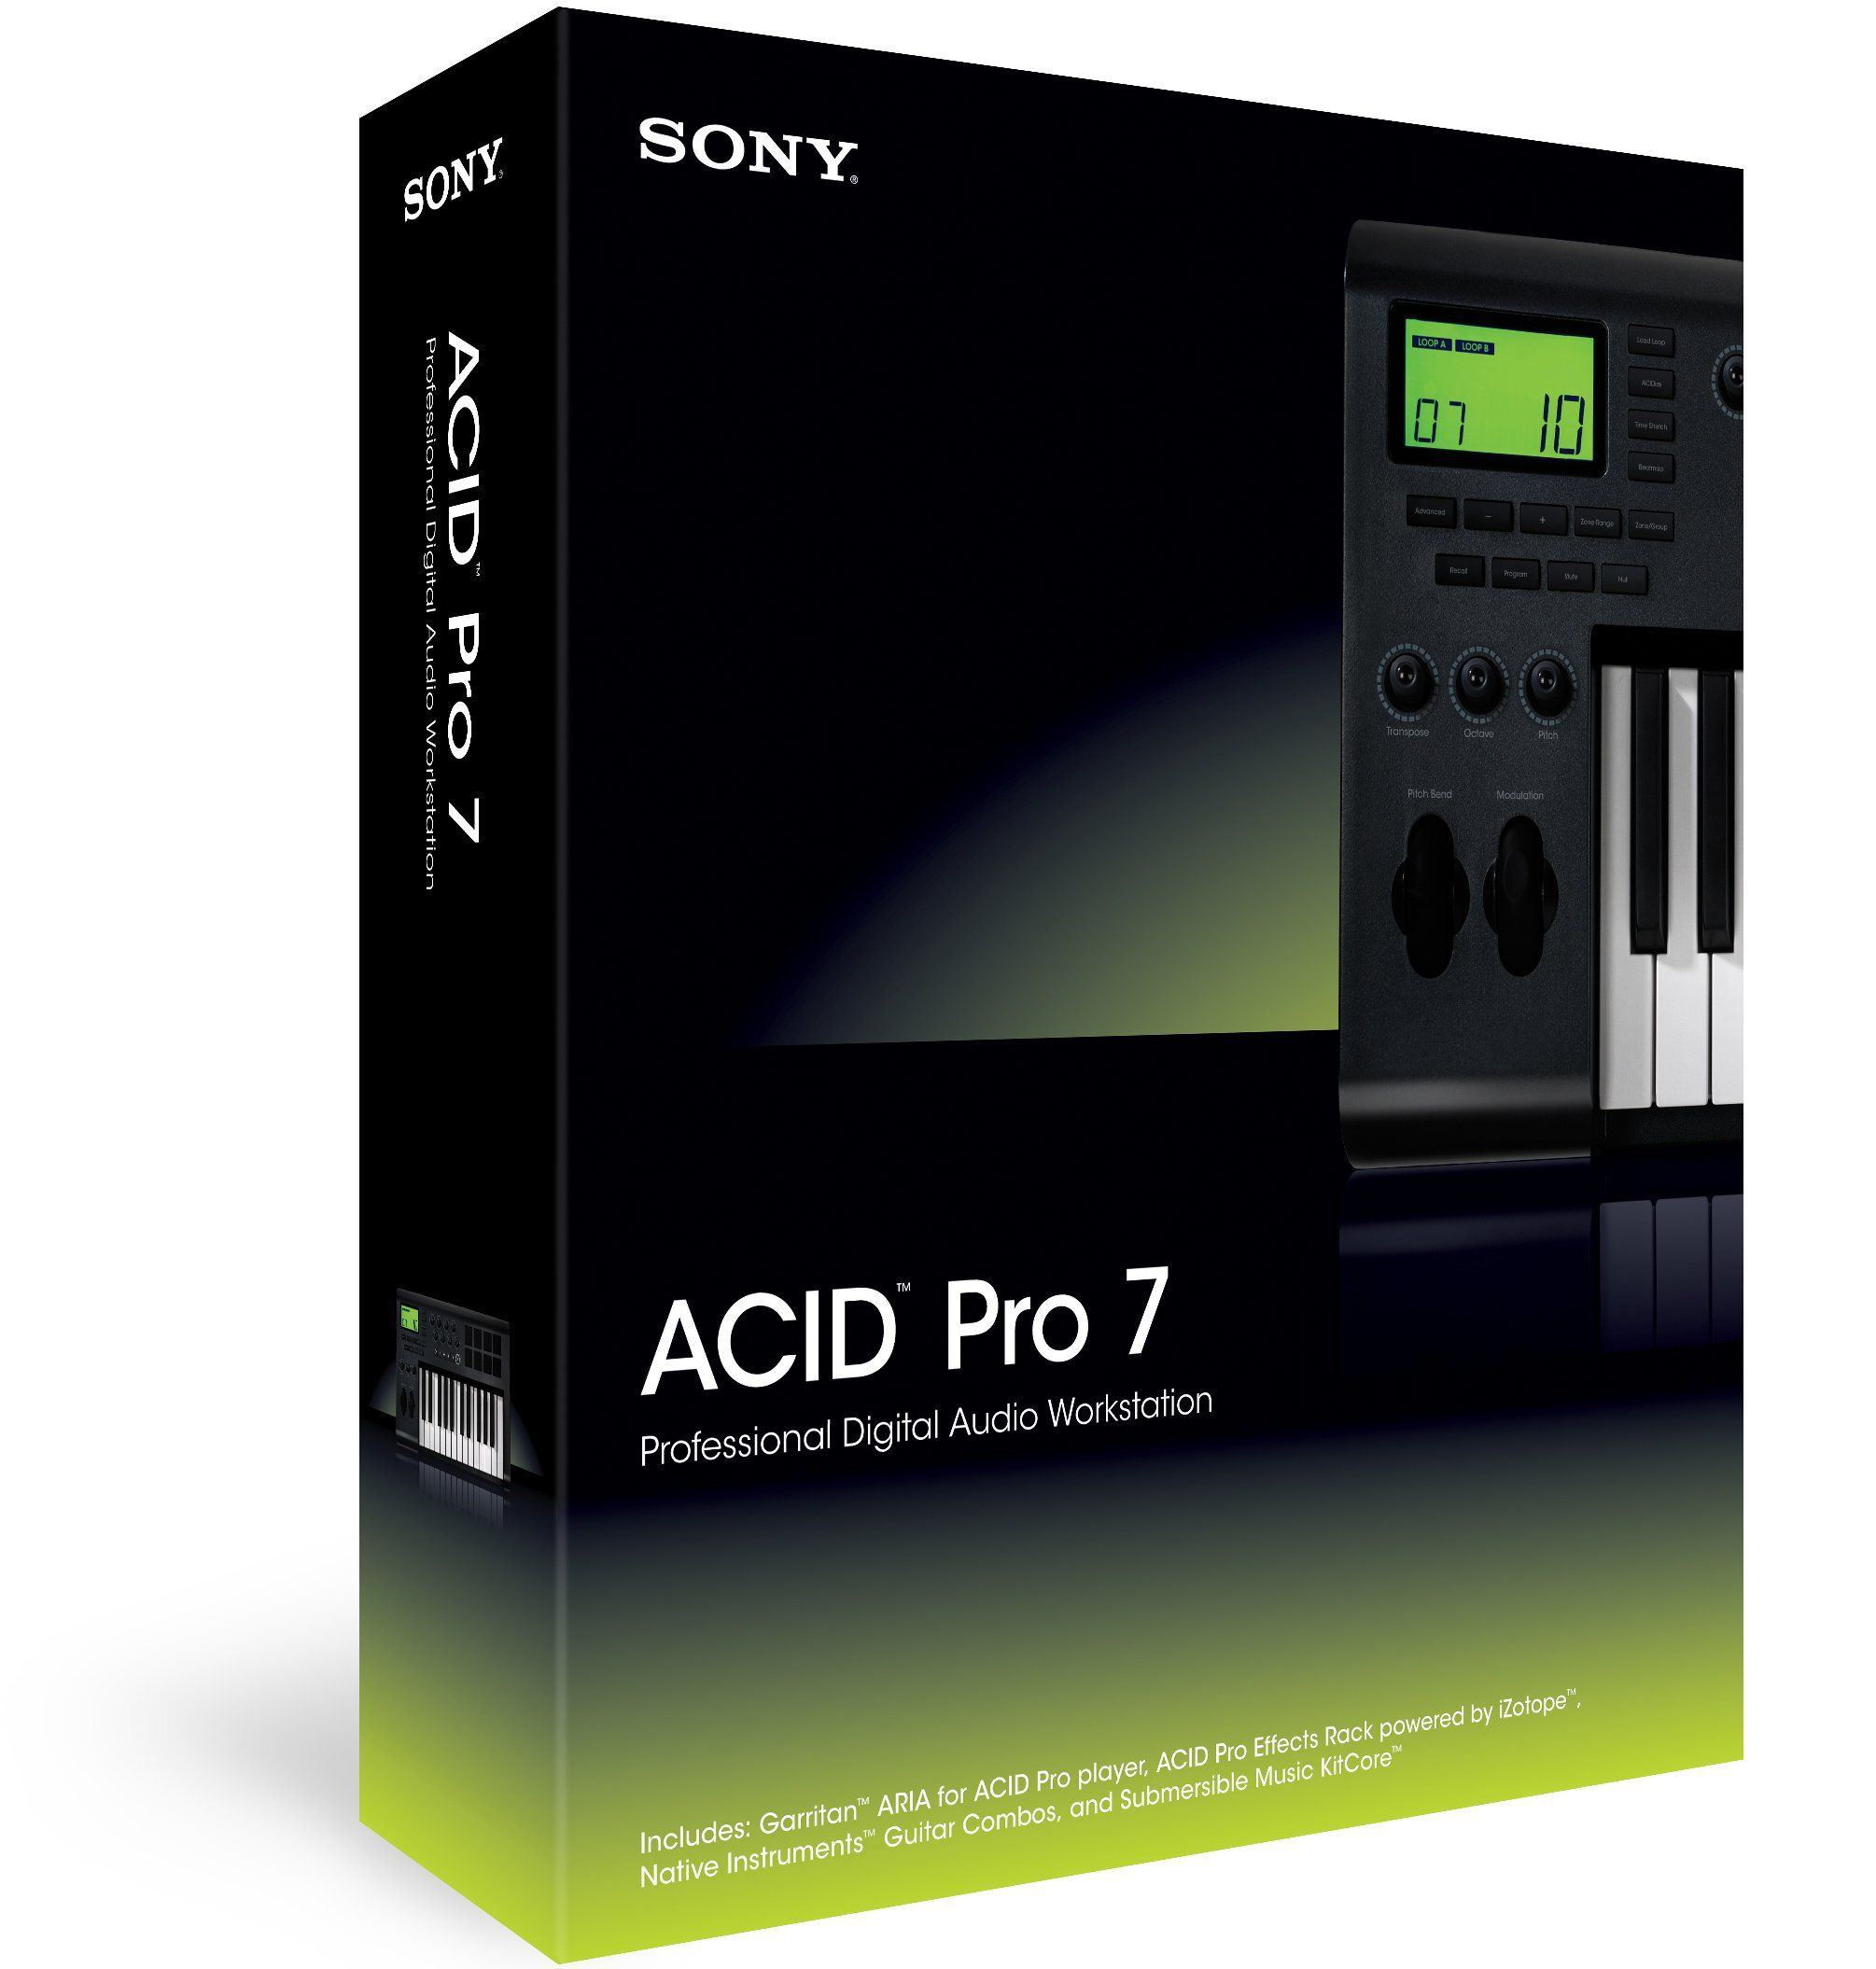 Sony acid pro 8. 0. 5. 226 download for pc free.